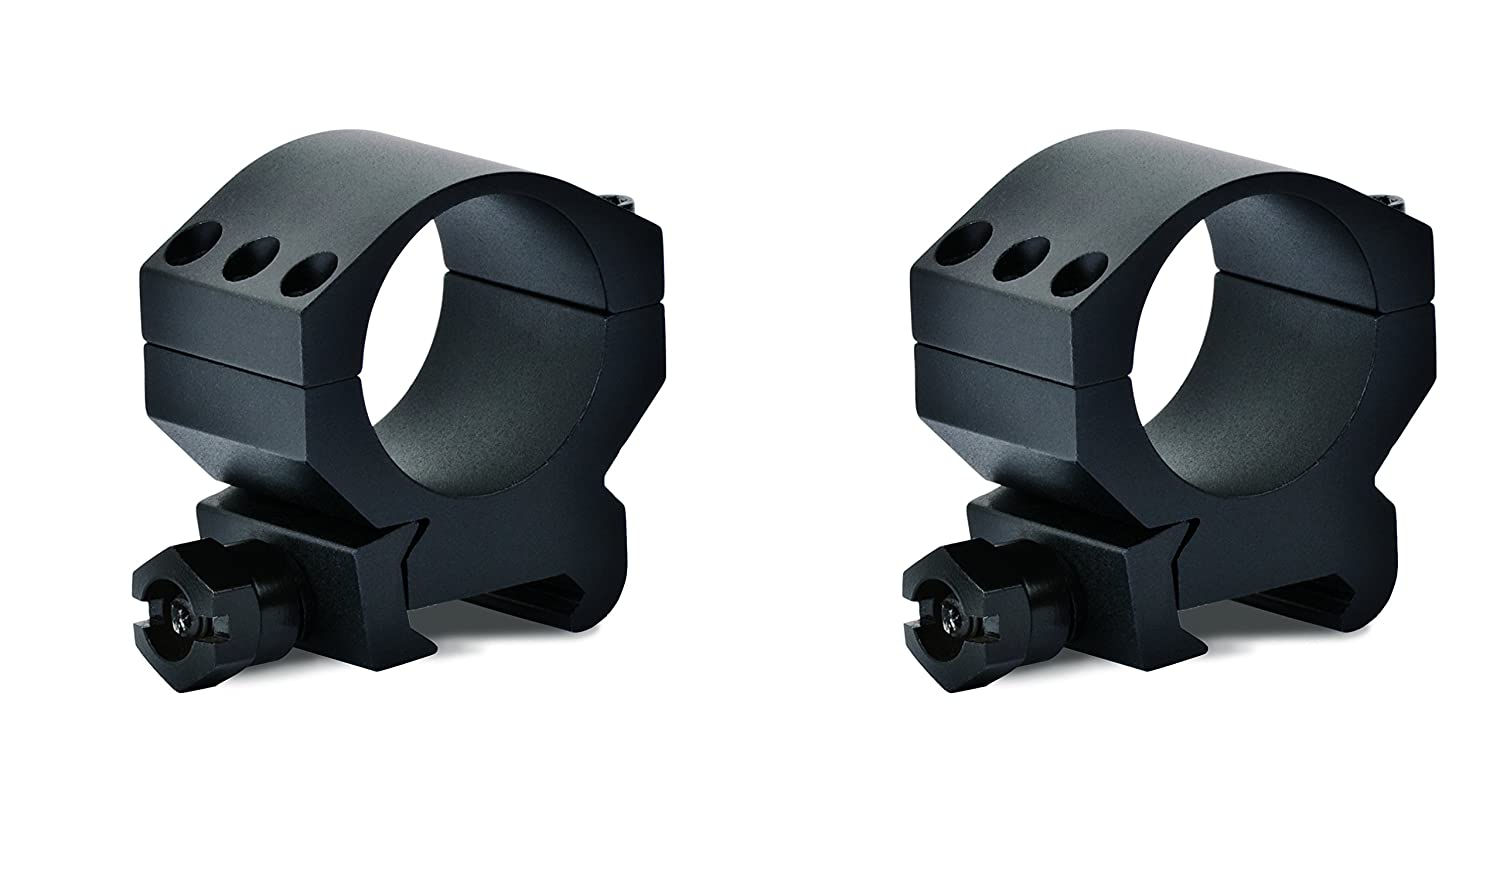 2.Vortex Tactical 30mm Riflescope Ring